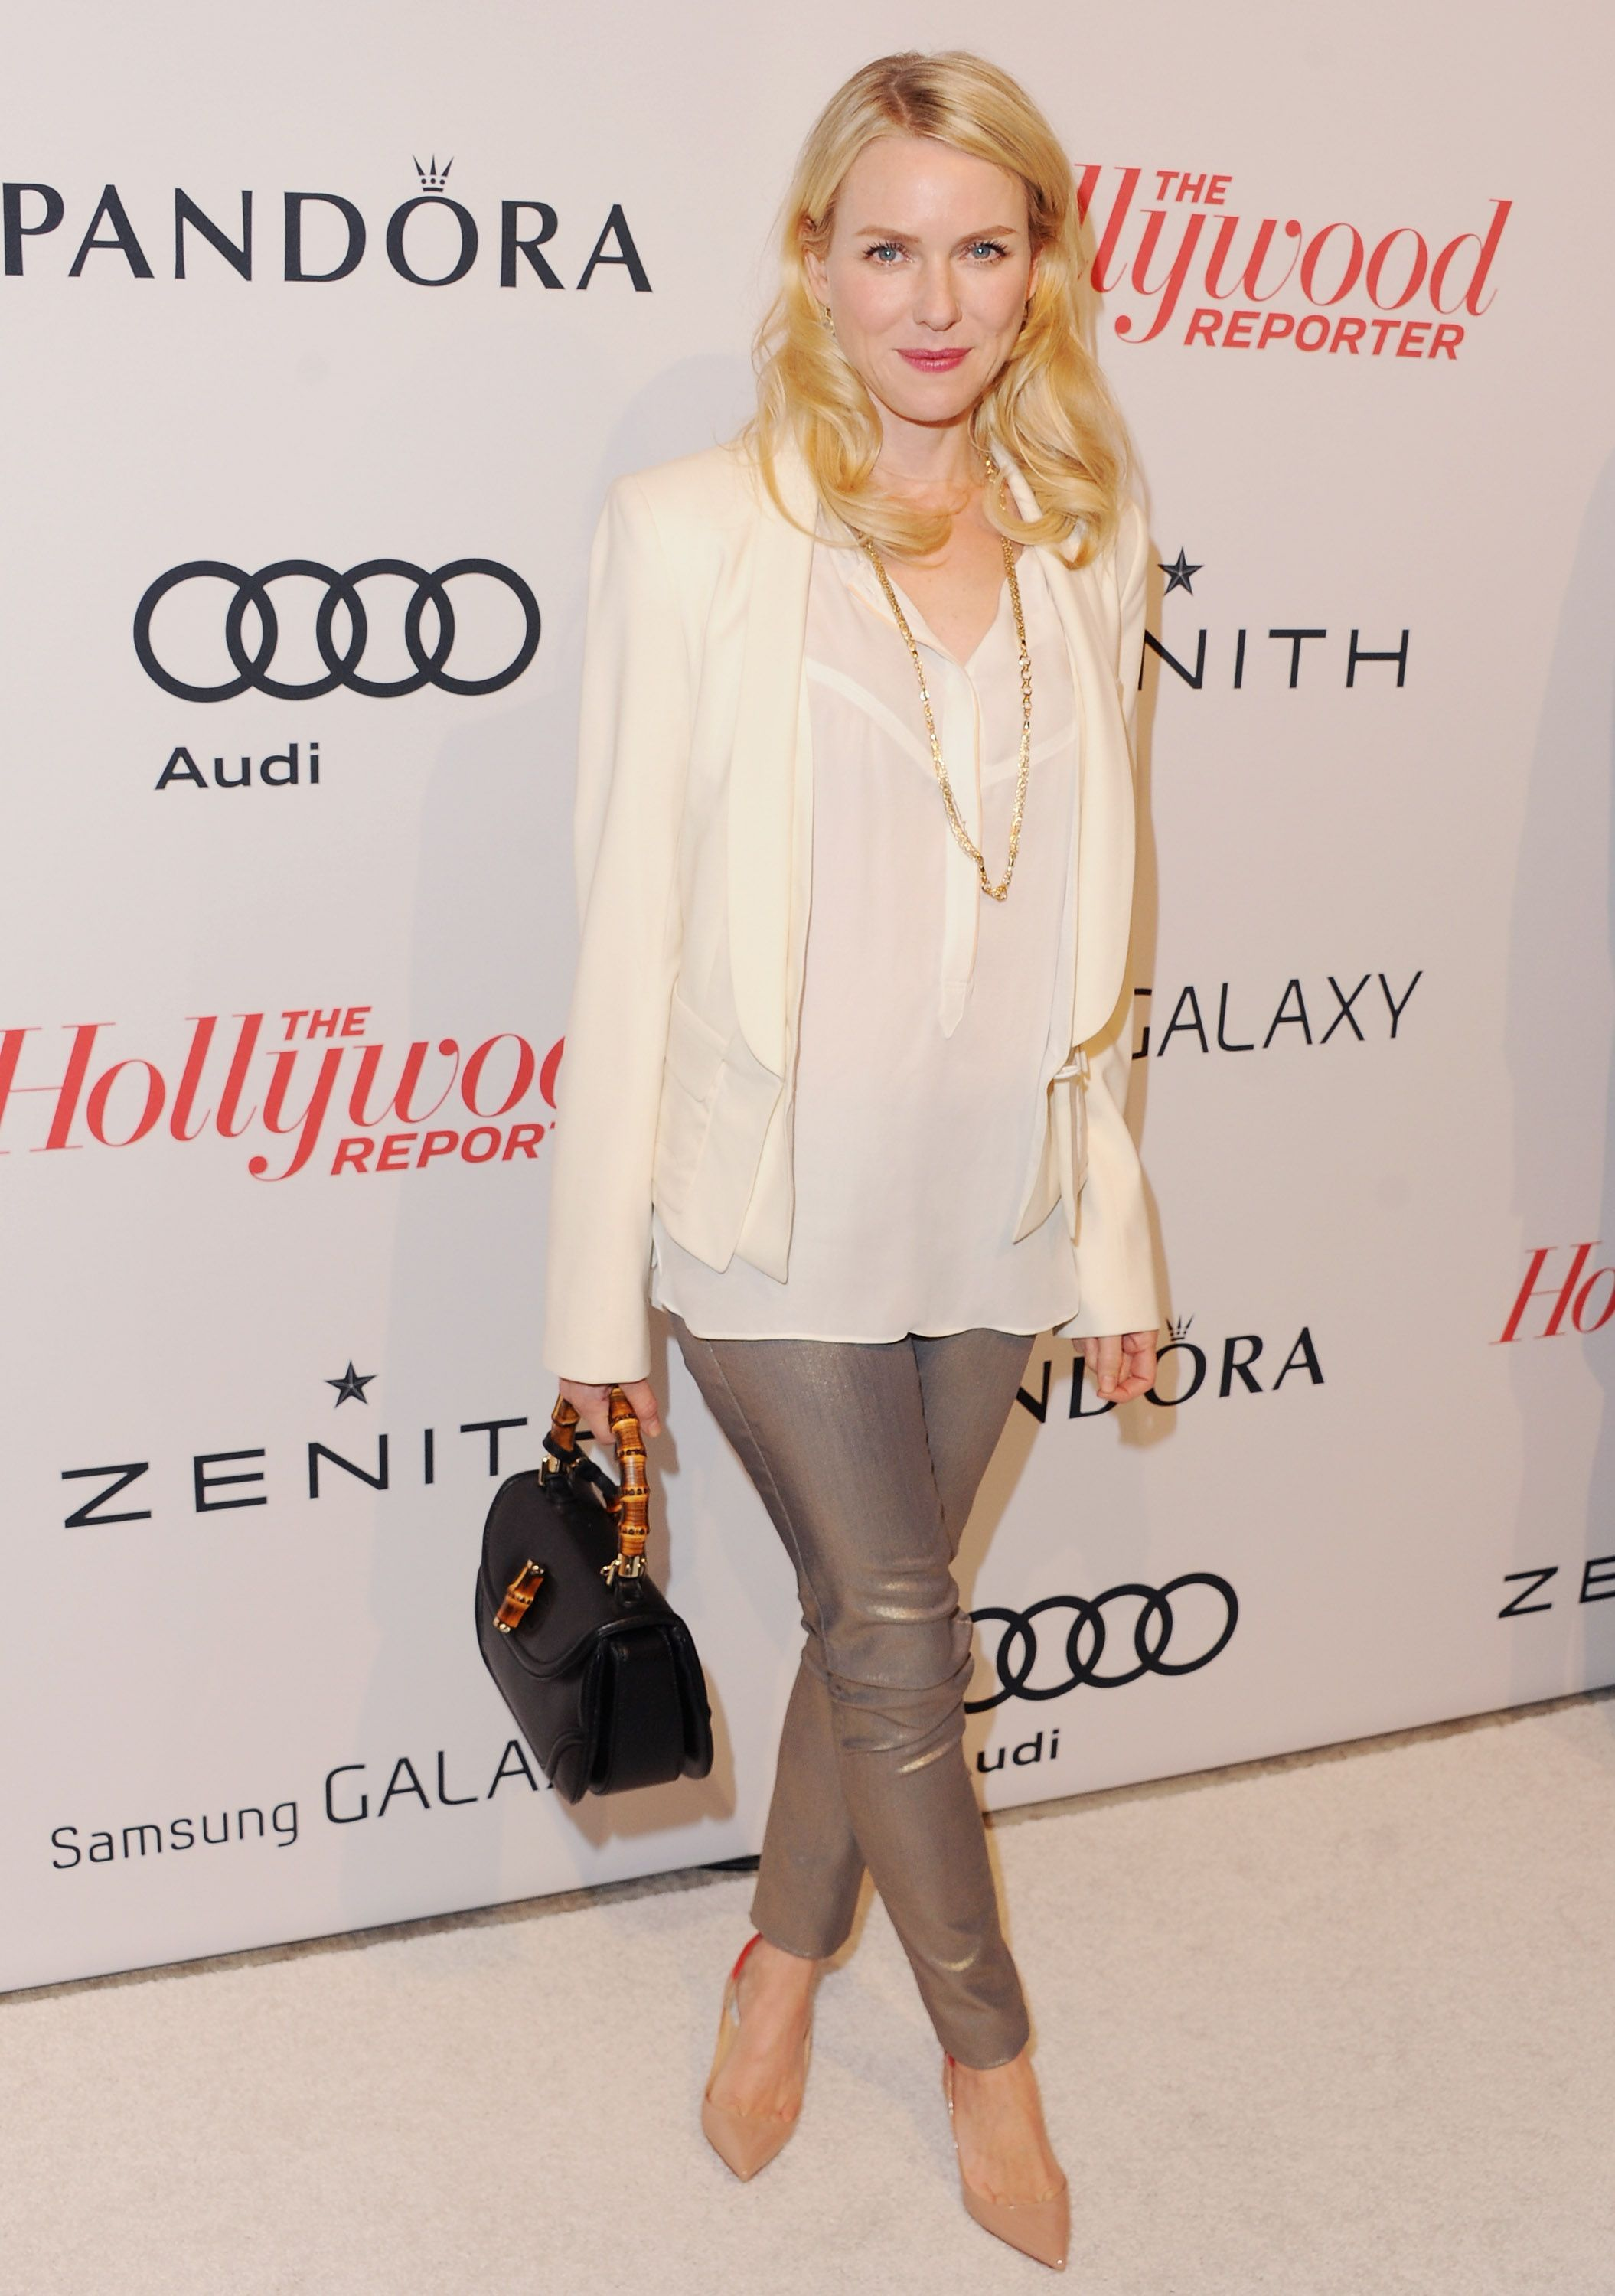 d96c4d0c4e4e Naomi Watts carried a black leather top handle Bamboo bag to The Hollywood  Reporter Nominees' Night 2013 Celebrating The 85th Annual Academy Award  Nominees ...